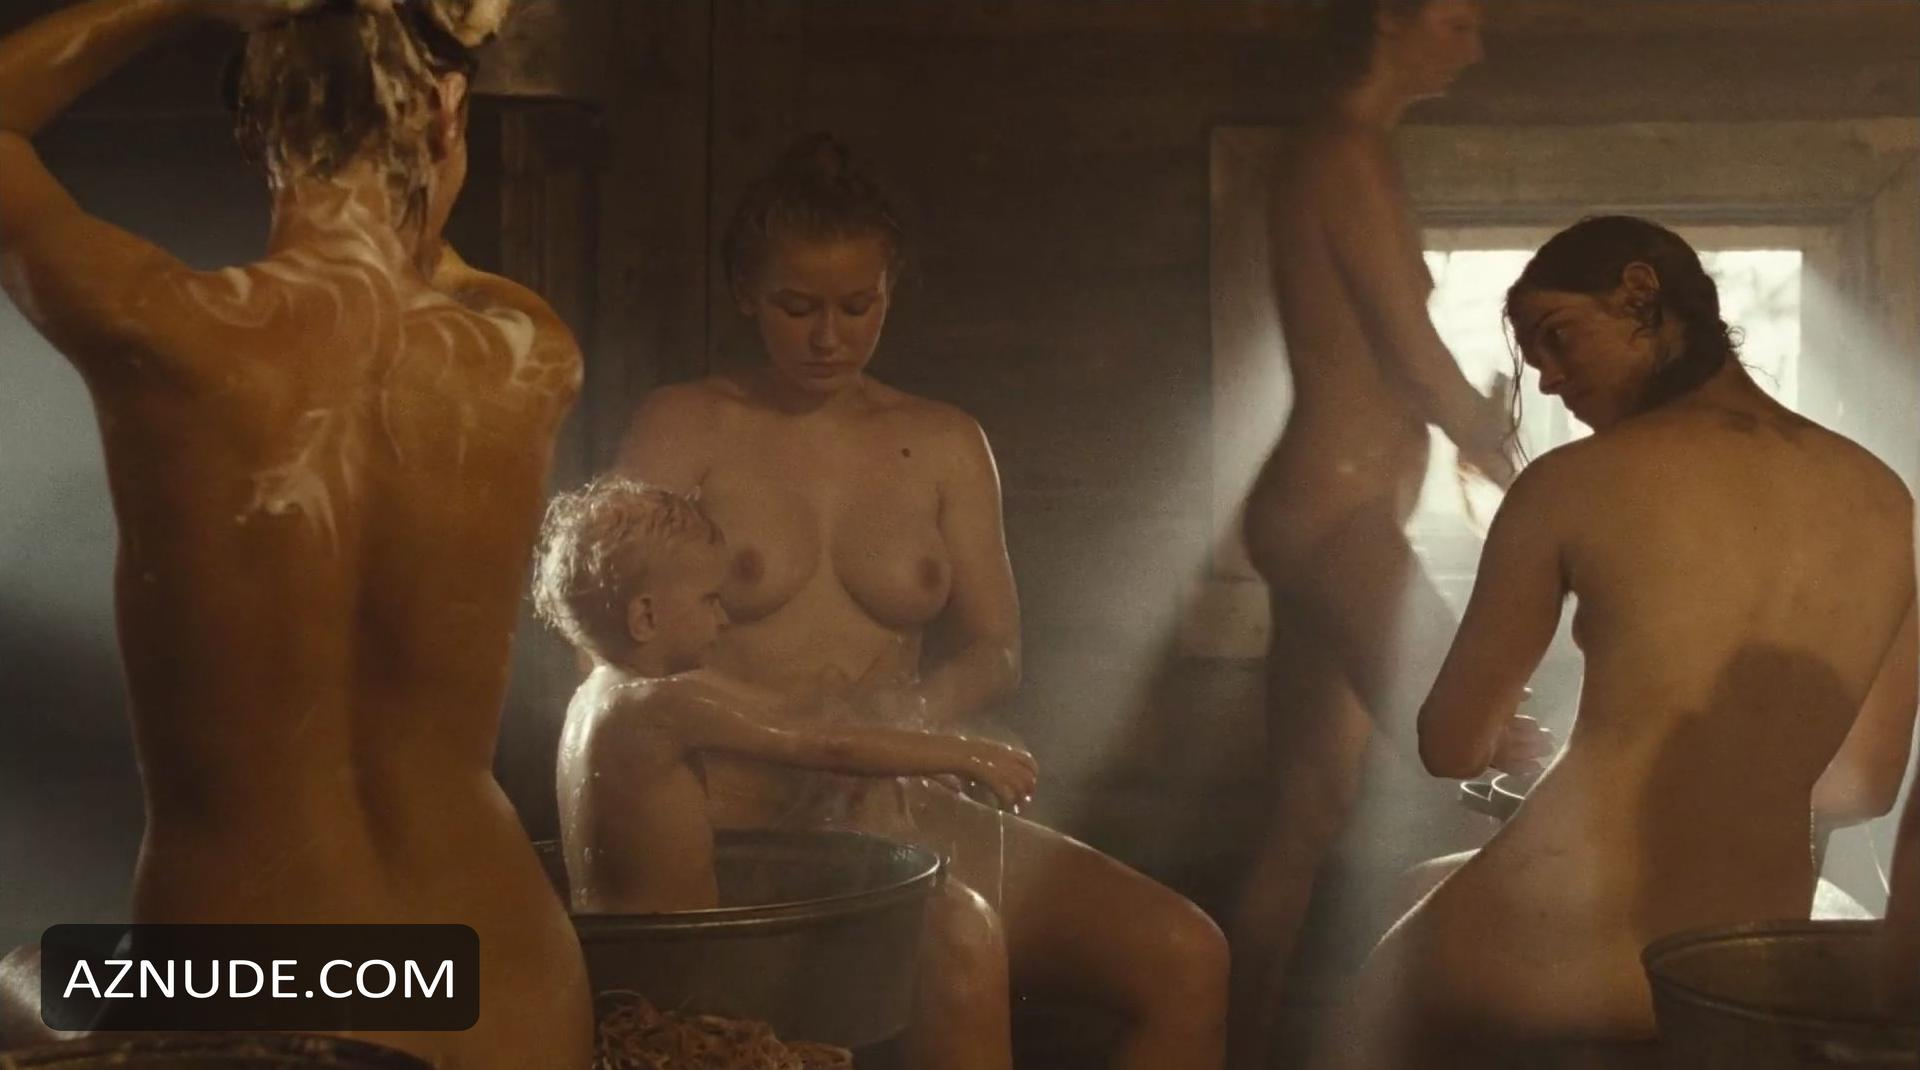 Robin wright nude sex in state of grace scandalplanetcom - 1 part 1